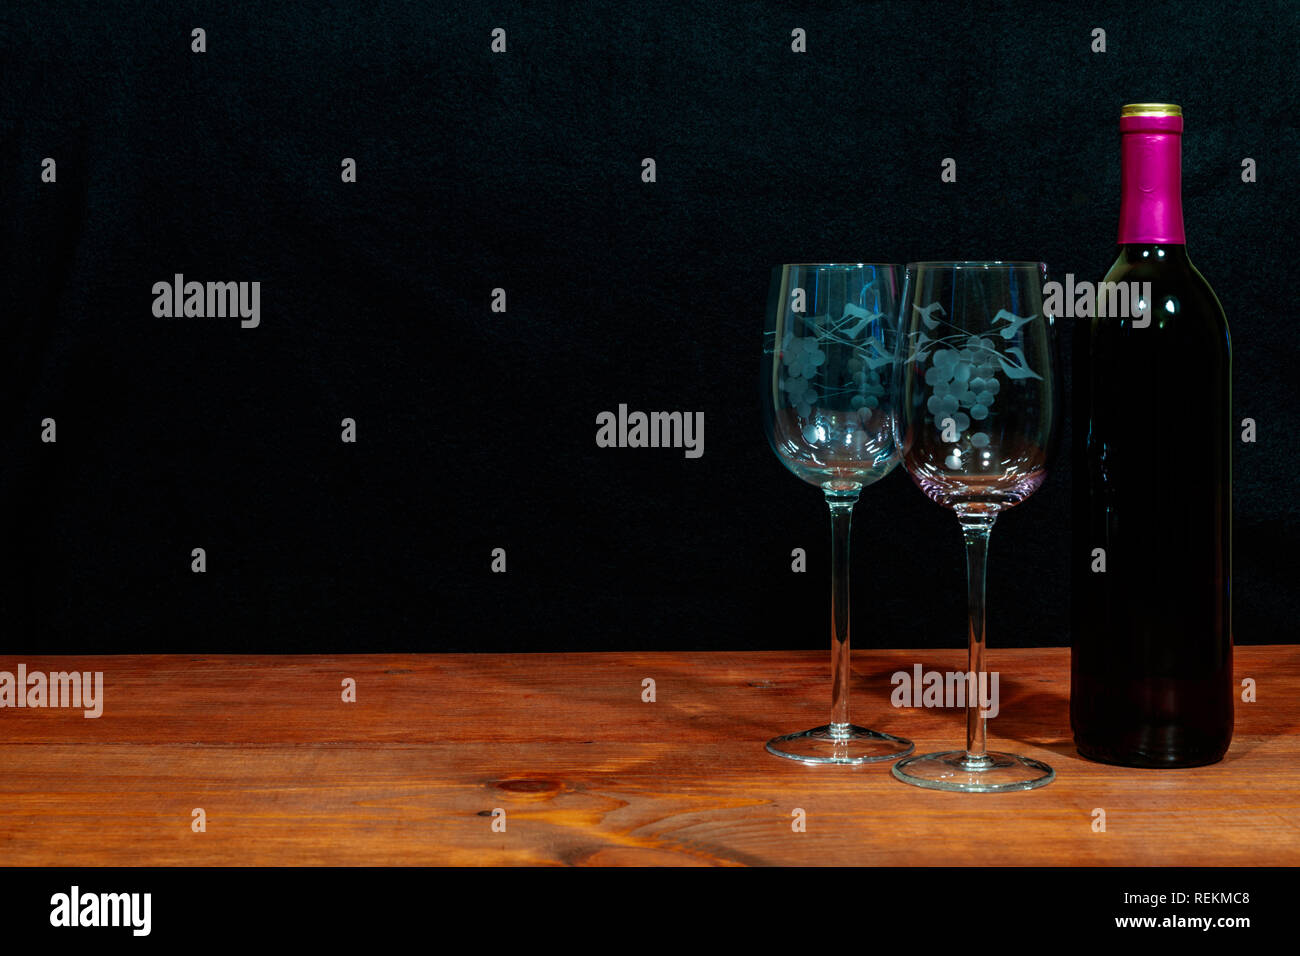 Beautiful etched wine glasses and bottle of red wine on wooden table and dark background. Valentines, Mothers Day, Easter, Christmas, Wedding Concepts Stock Photo